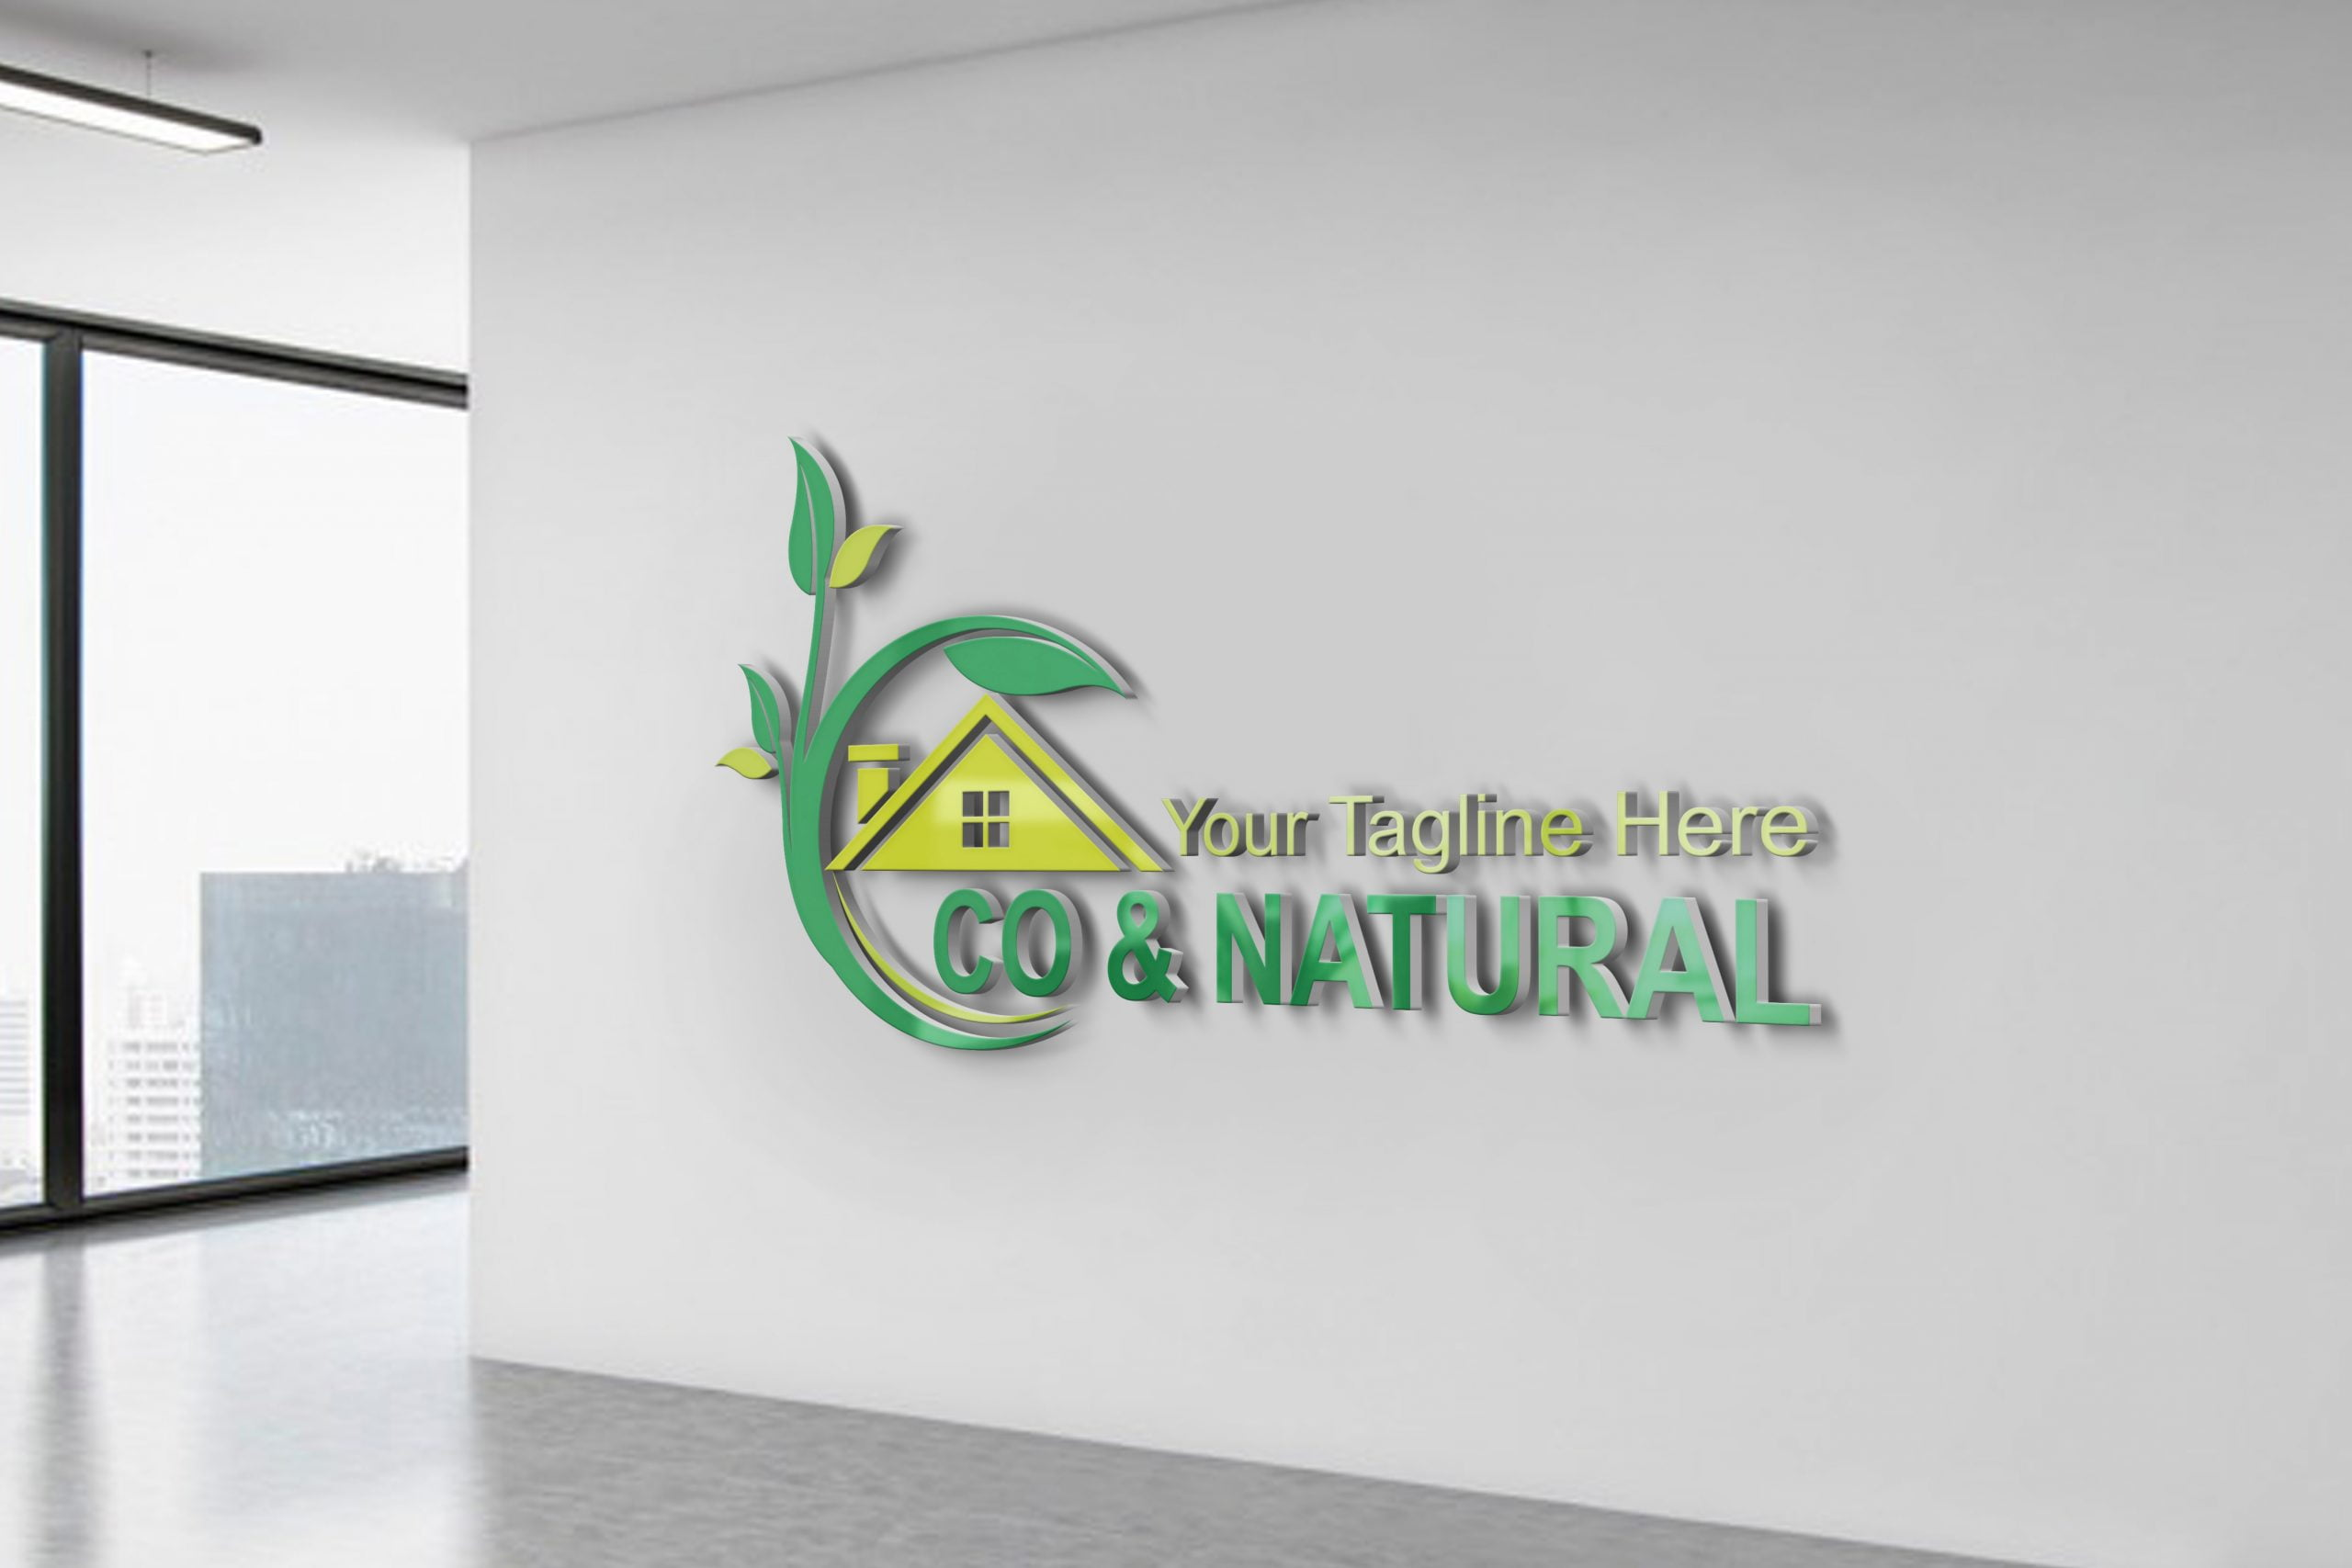 Eco & nature house logo design template on office wall